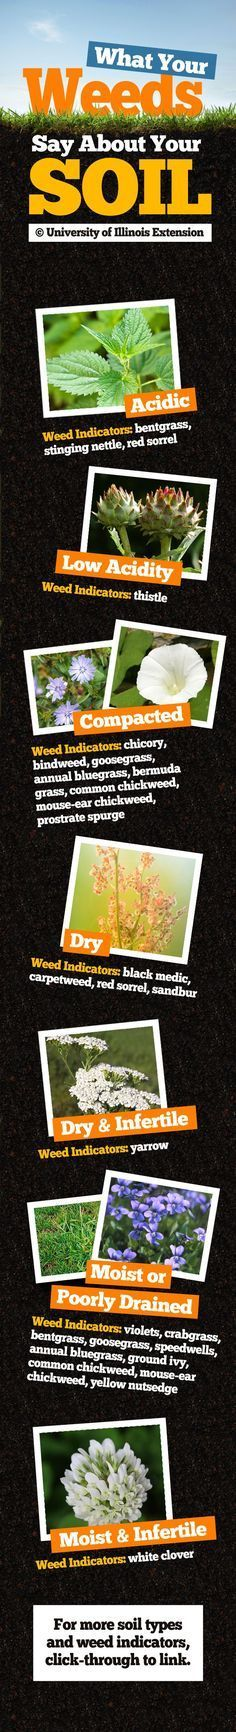 Wanna Know Your Soil's Current Condition? Use Your Weeds as Indicators: http://homeandgardenamerica.com/using-weeds-as-soil-indicators